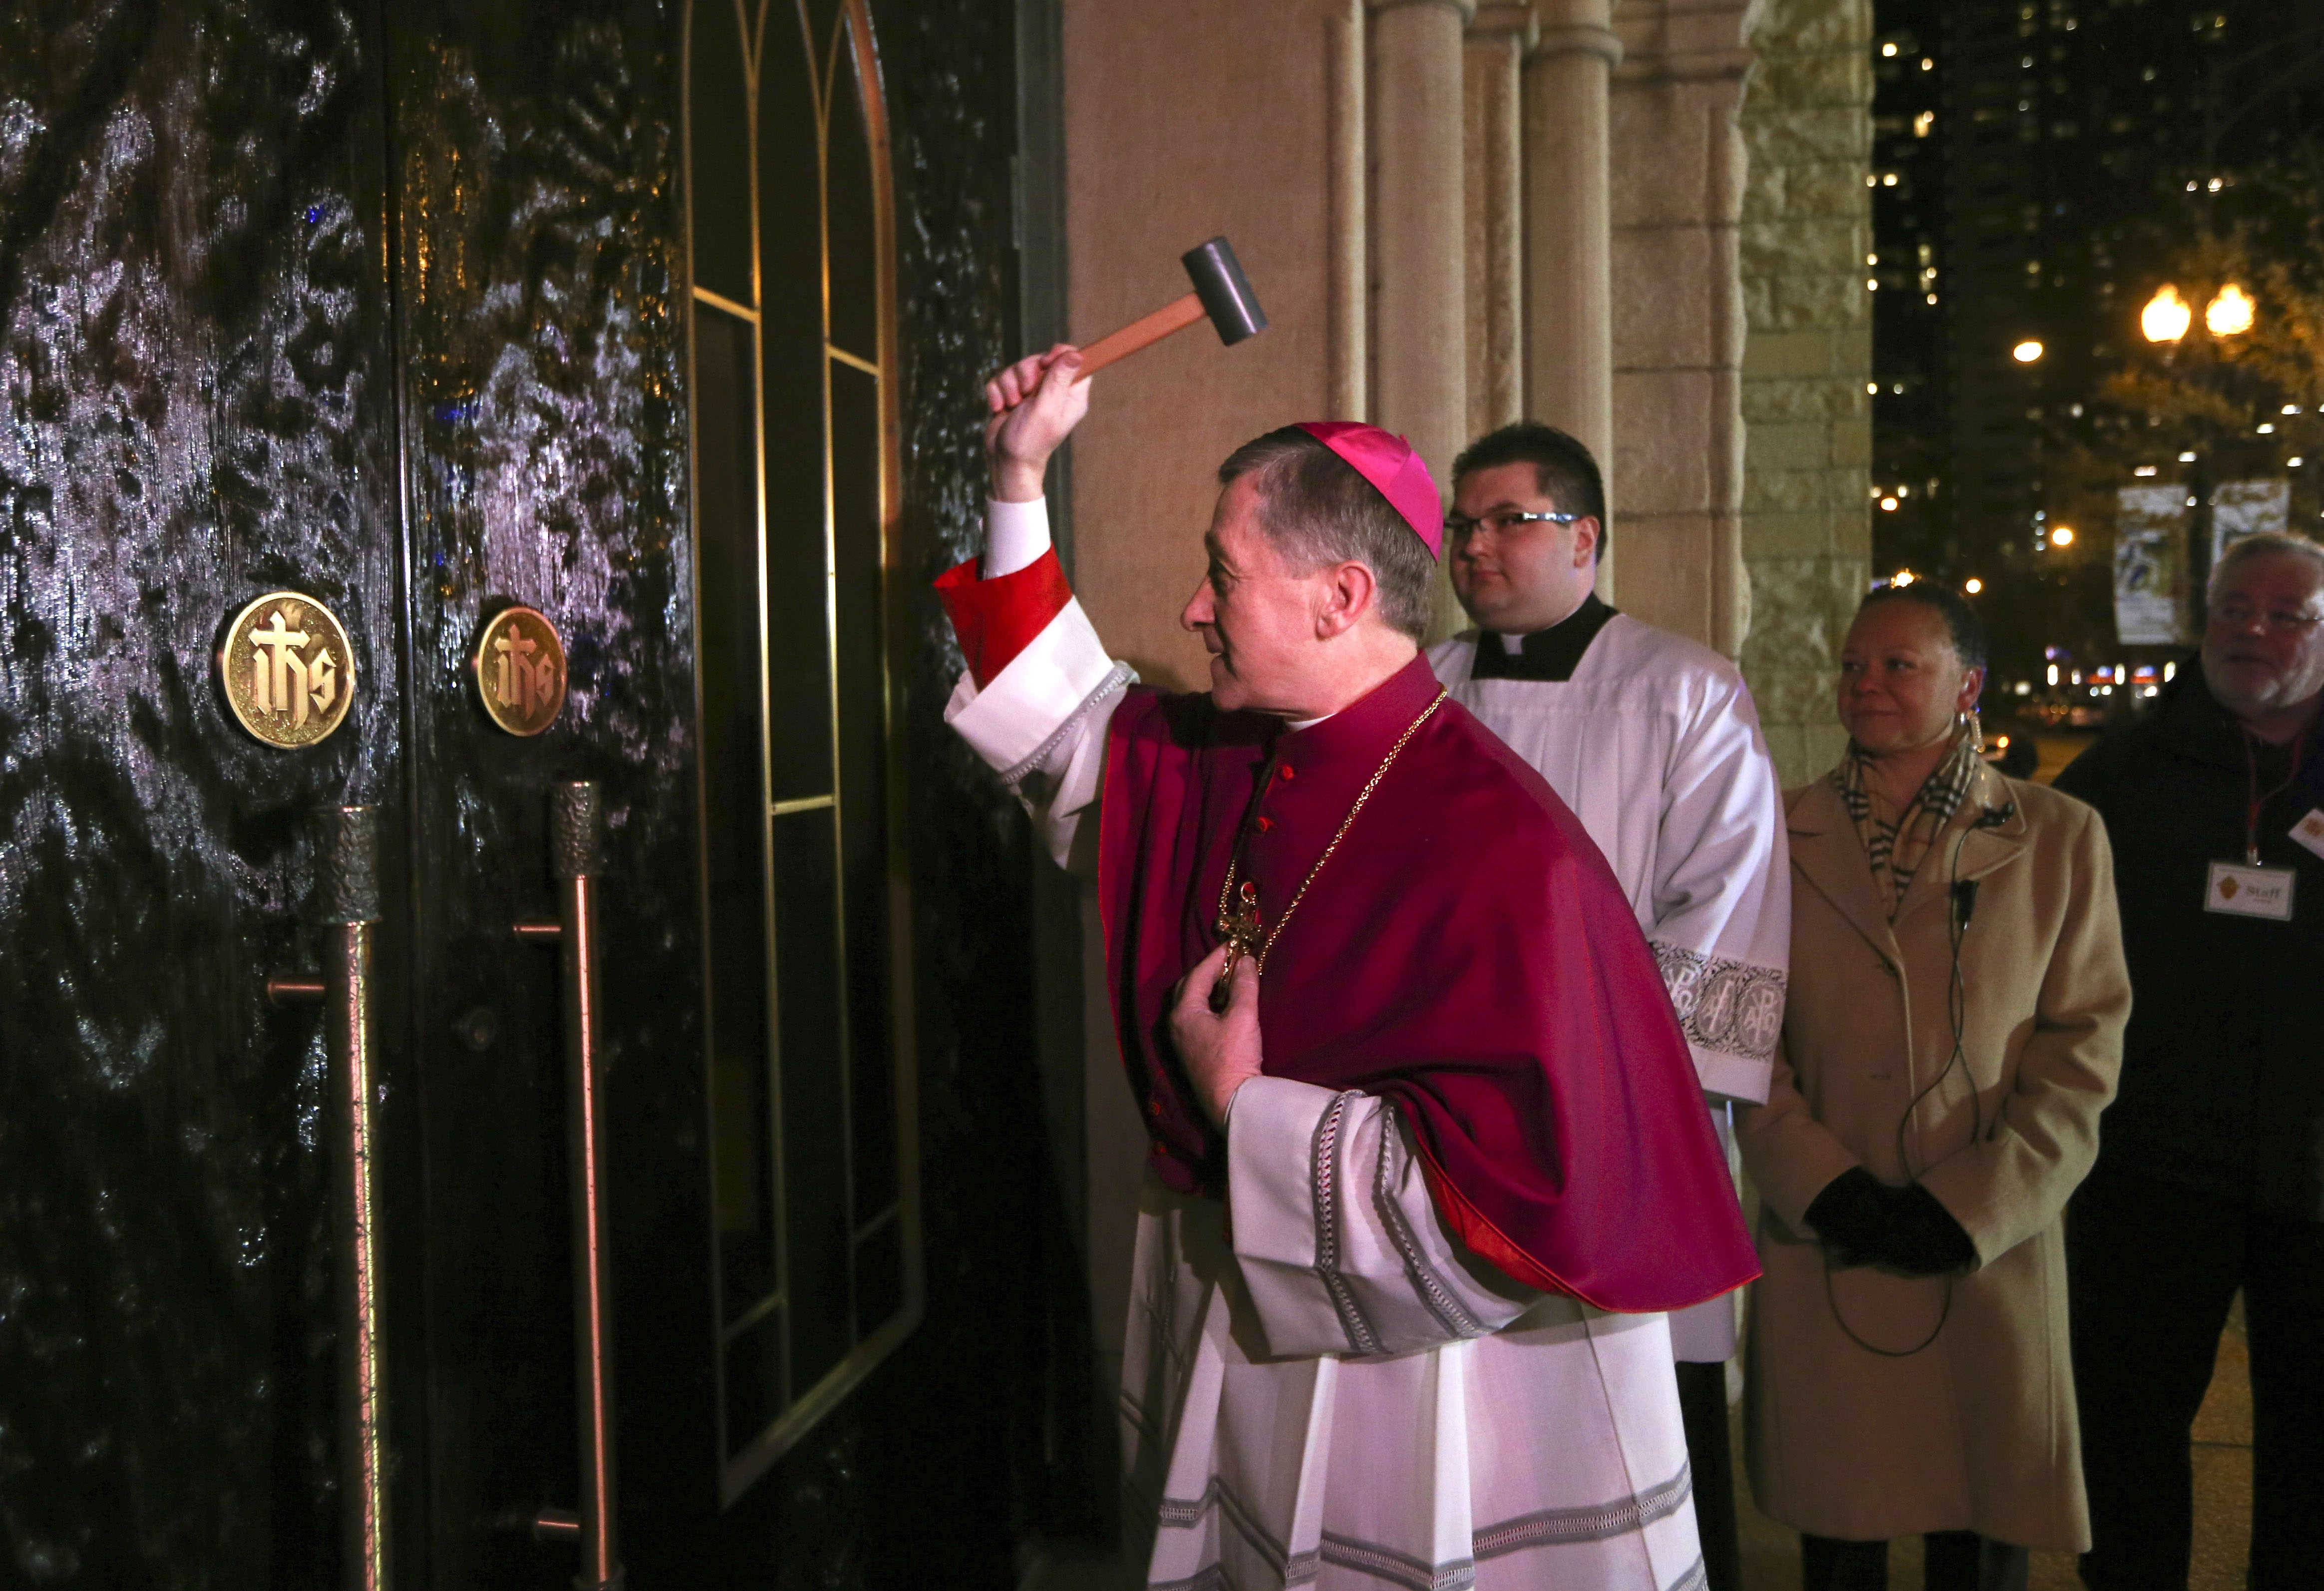 Incoming Archbishop Blase Cupich knock on the front doors before the Rite of Reception ceremony, at Holy Name Cathedral at 735 N. State St., in Chicago, on Monday, Nov. 17, 2014.